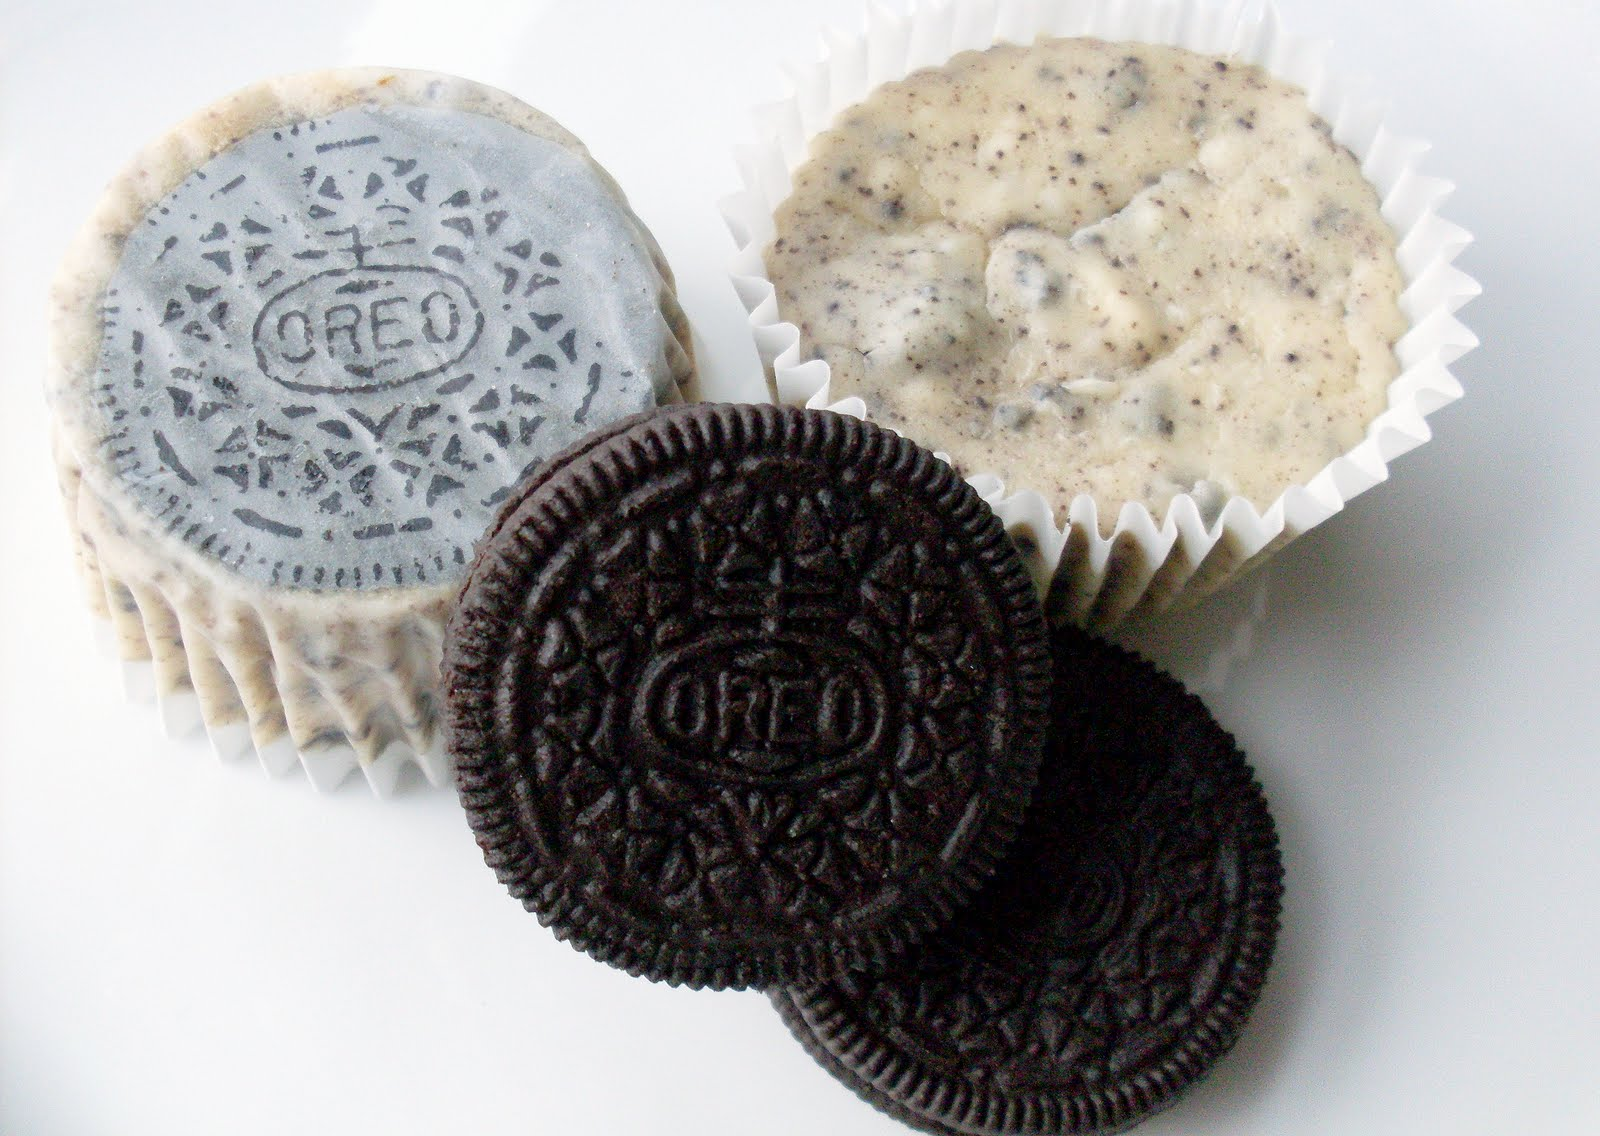 for the love: Oreo Cheesecake Cupcakes